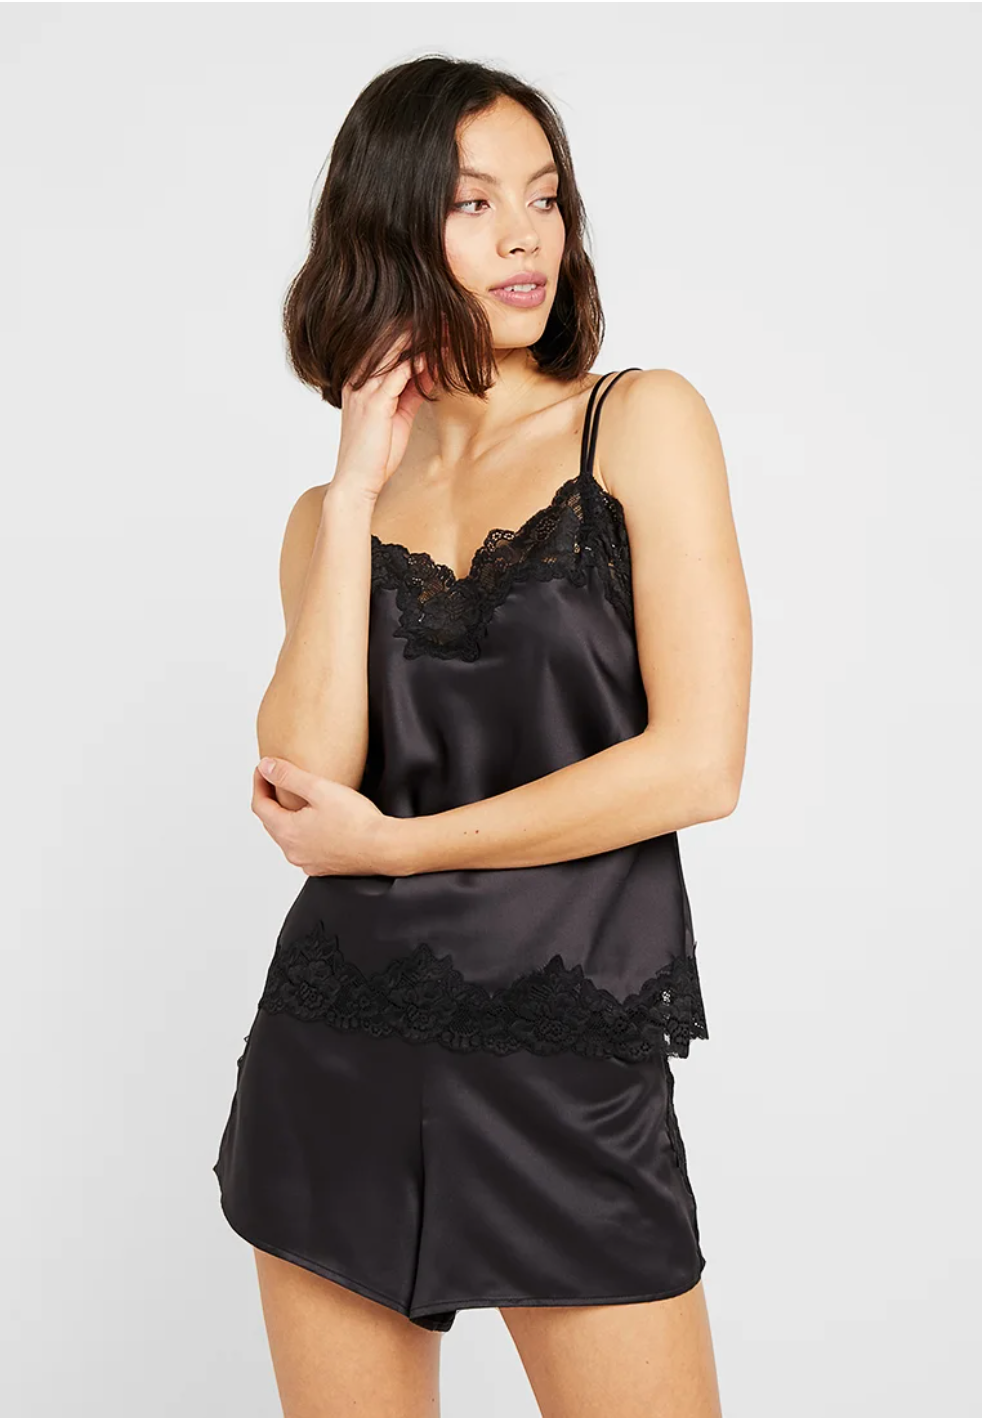 Ralph Lauren Camisole Short Set - Black